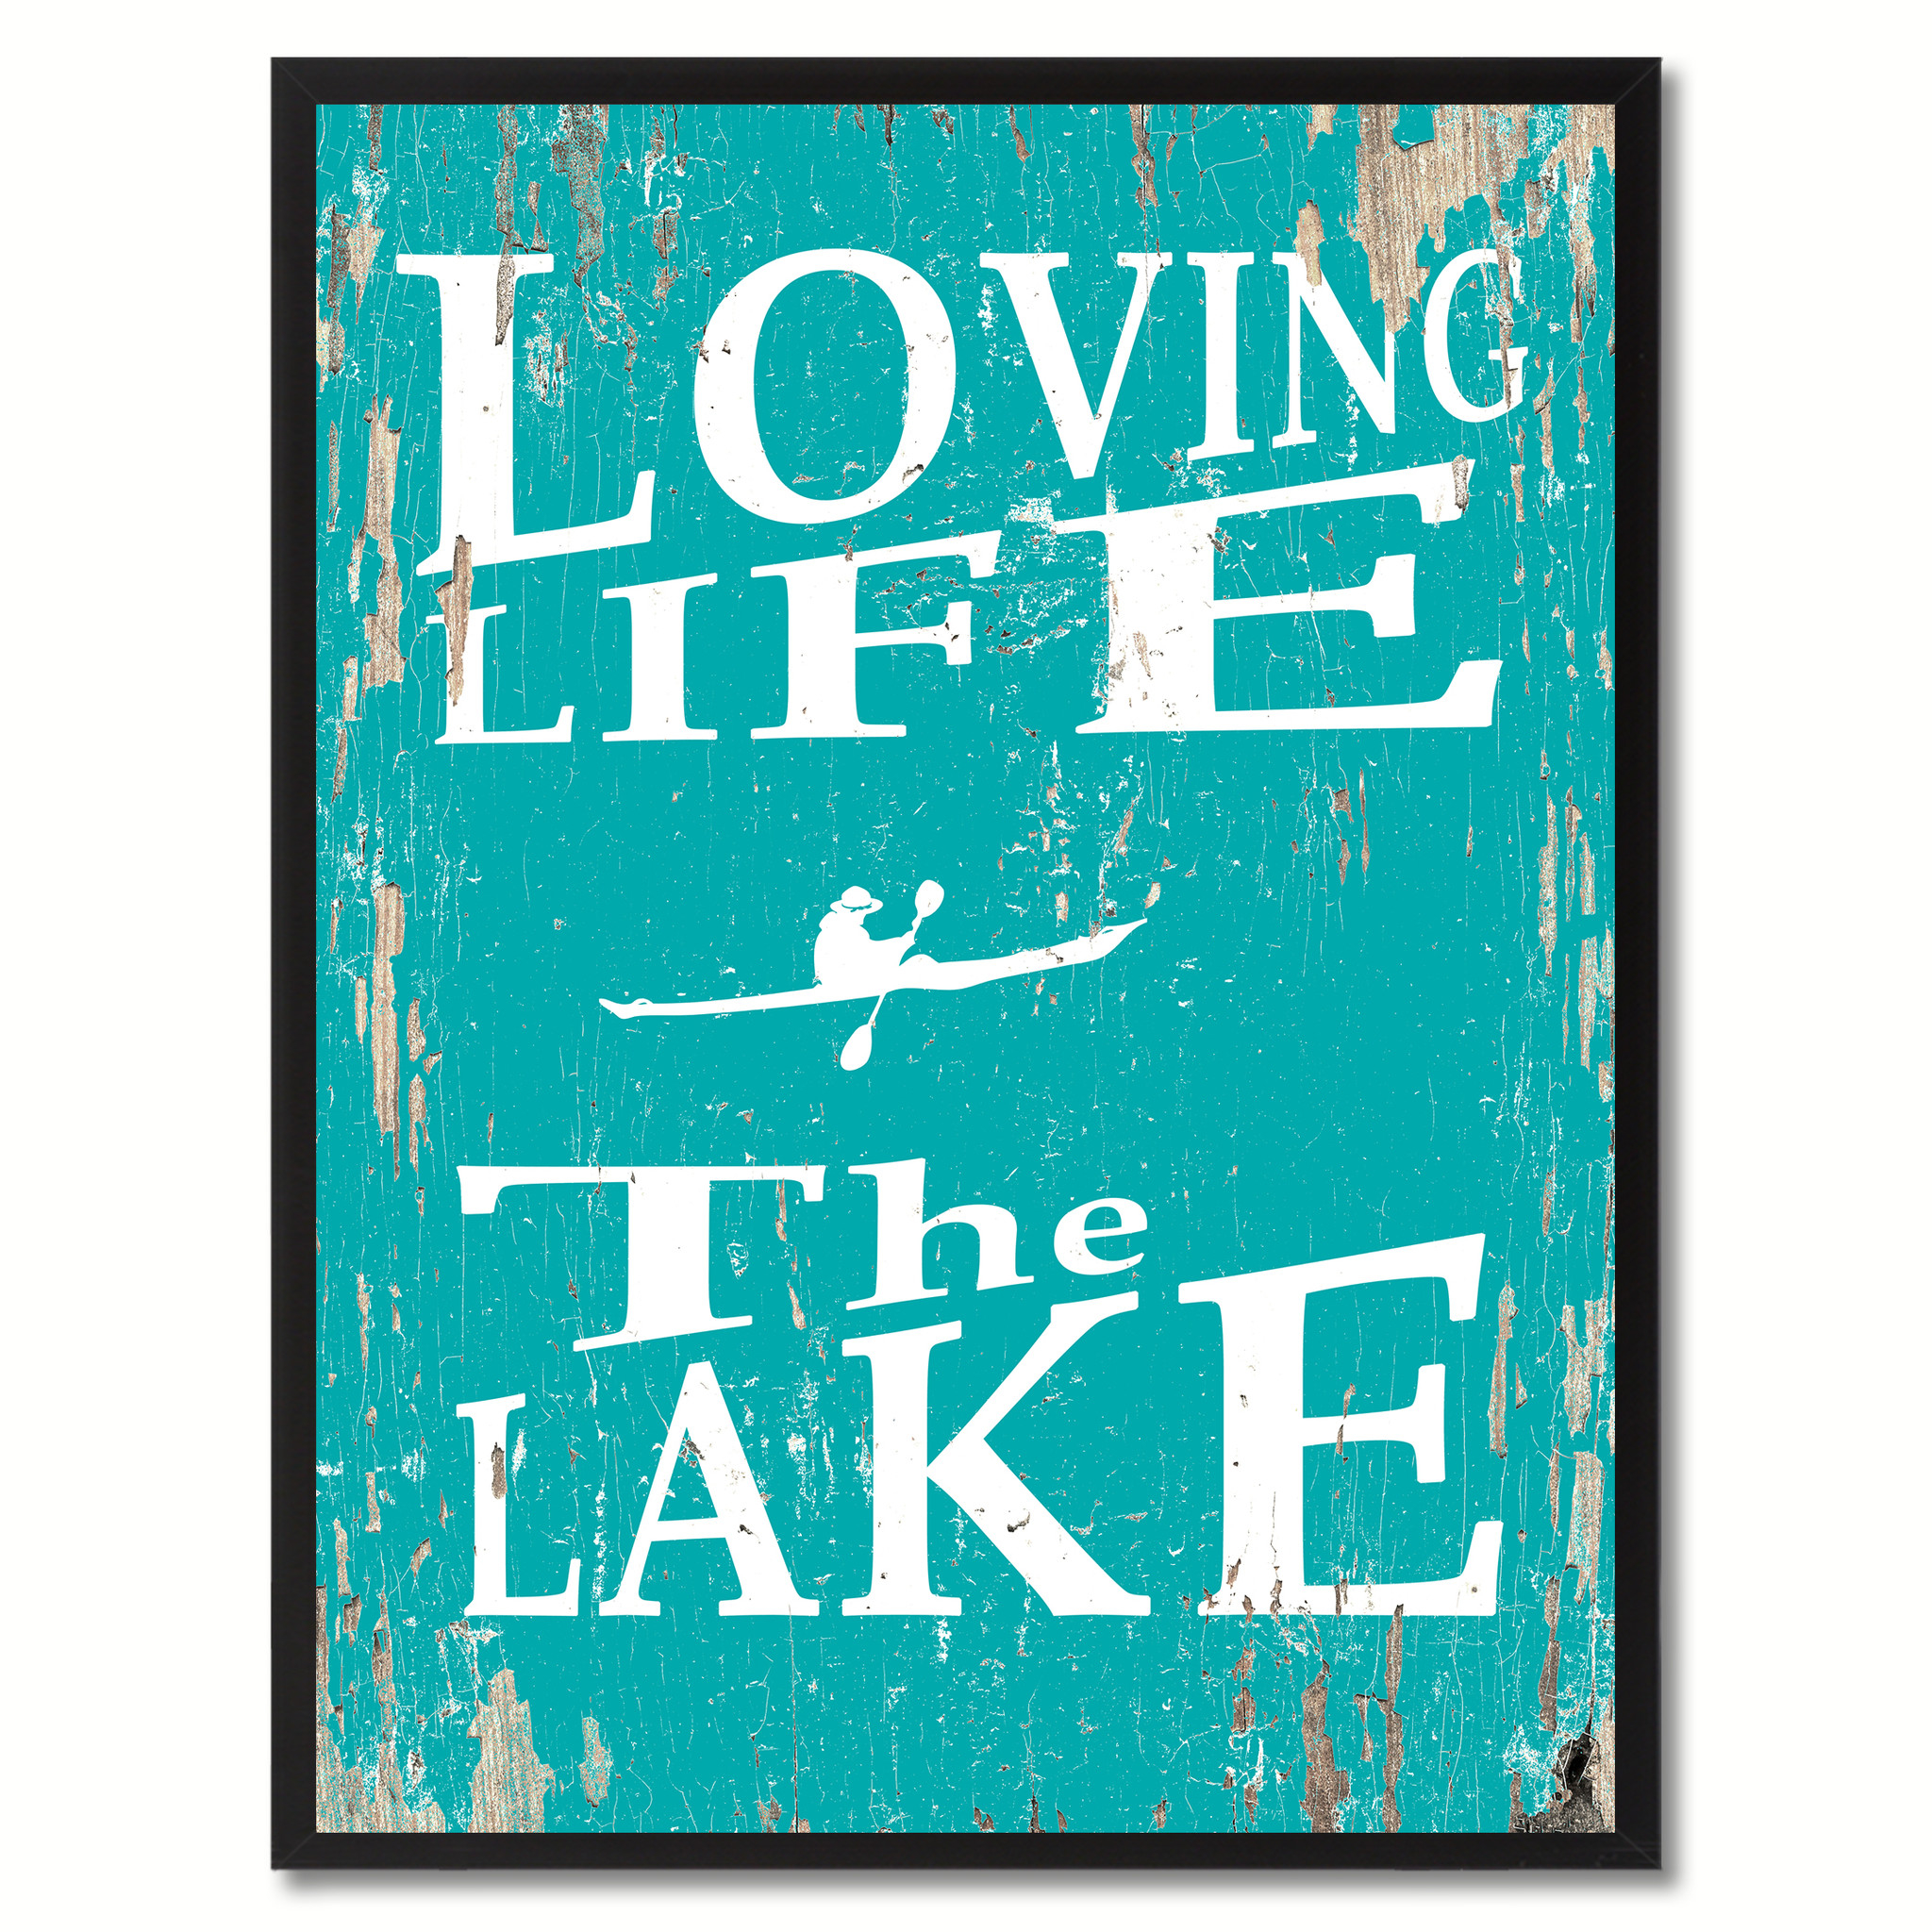 "Loving Life The Lake Saying Canvas Print, Black Picture Frame Home Decor Wall Art Gifts - 7""x9\"""